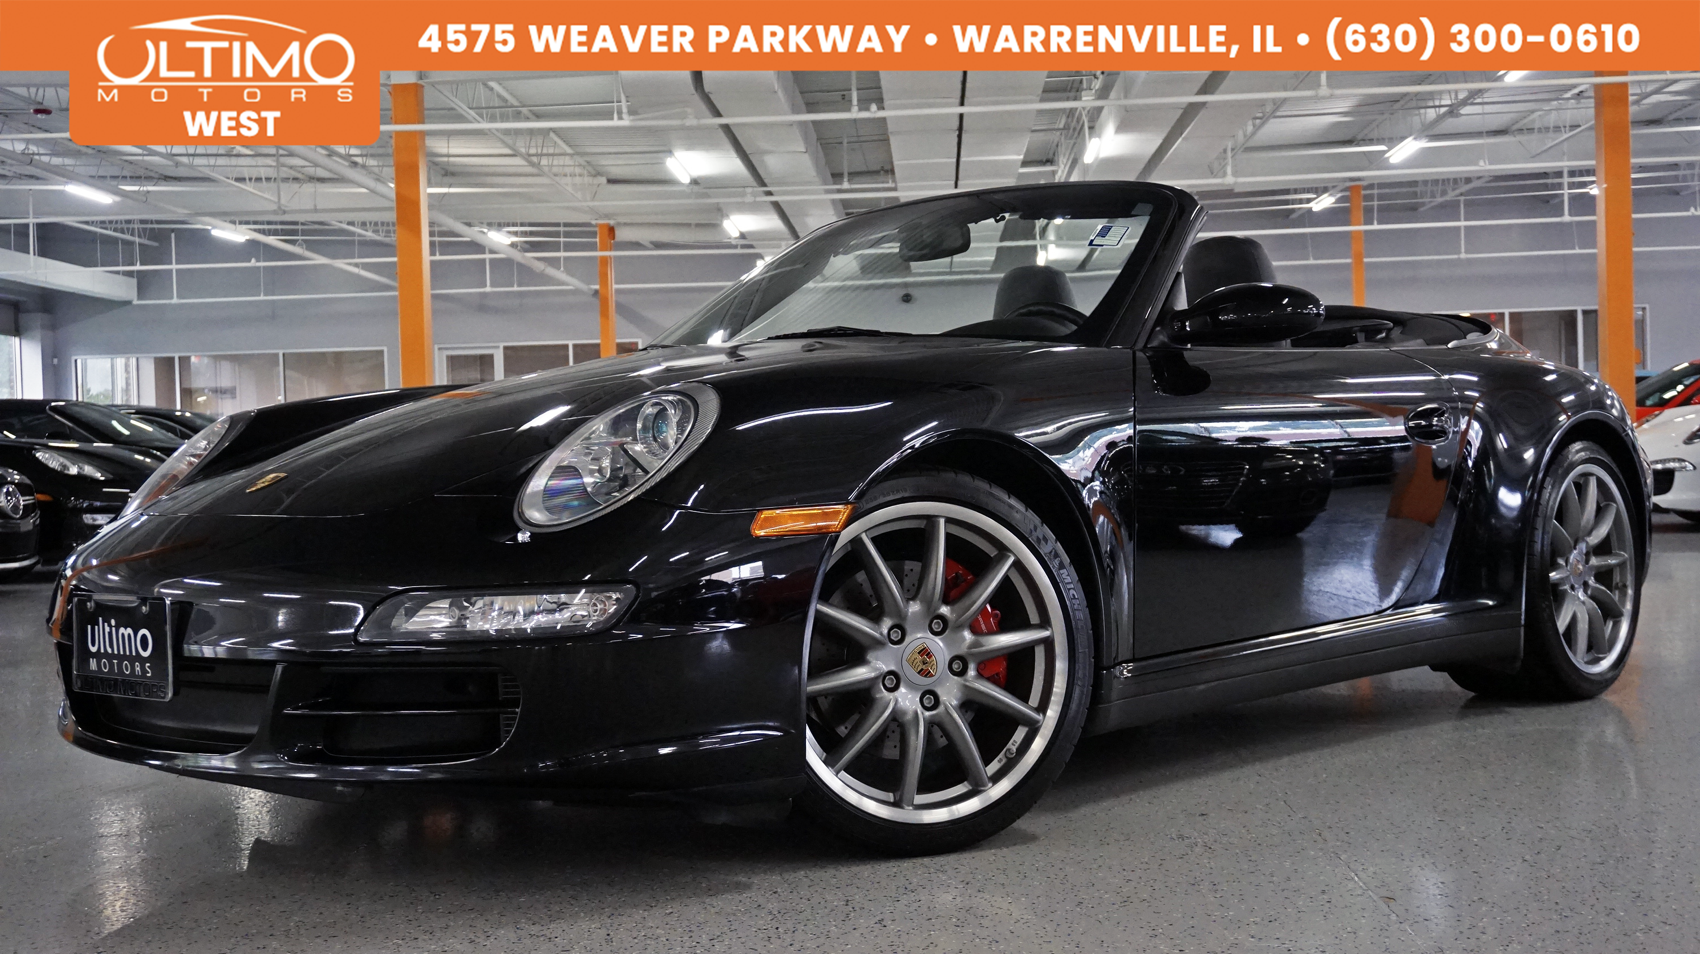 Pre-Owned 2007 Porsche 911 Carrera 4S, 6-Speed Manual, Supple Full Leather, Msrp $116,440